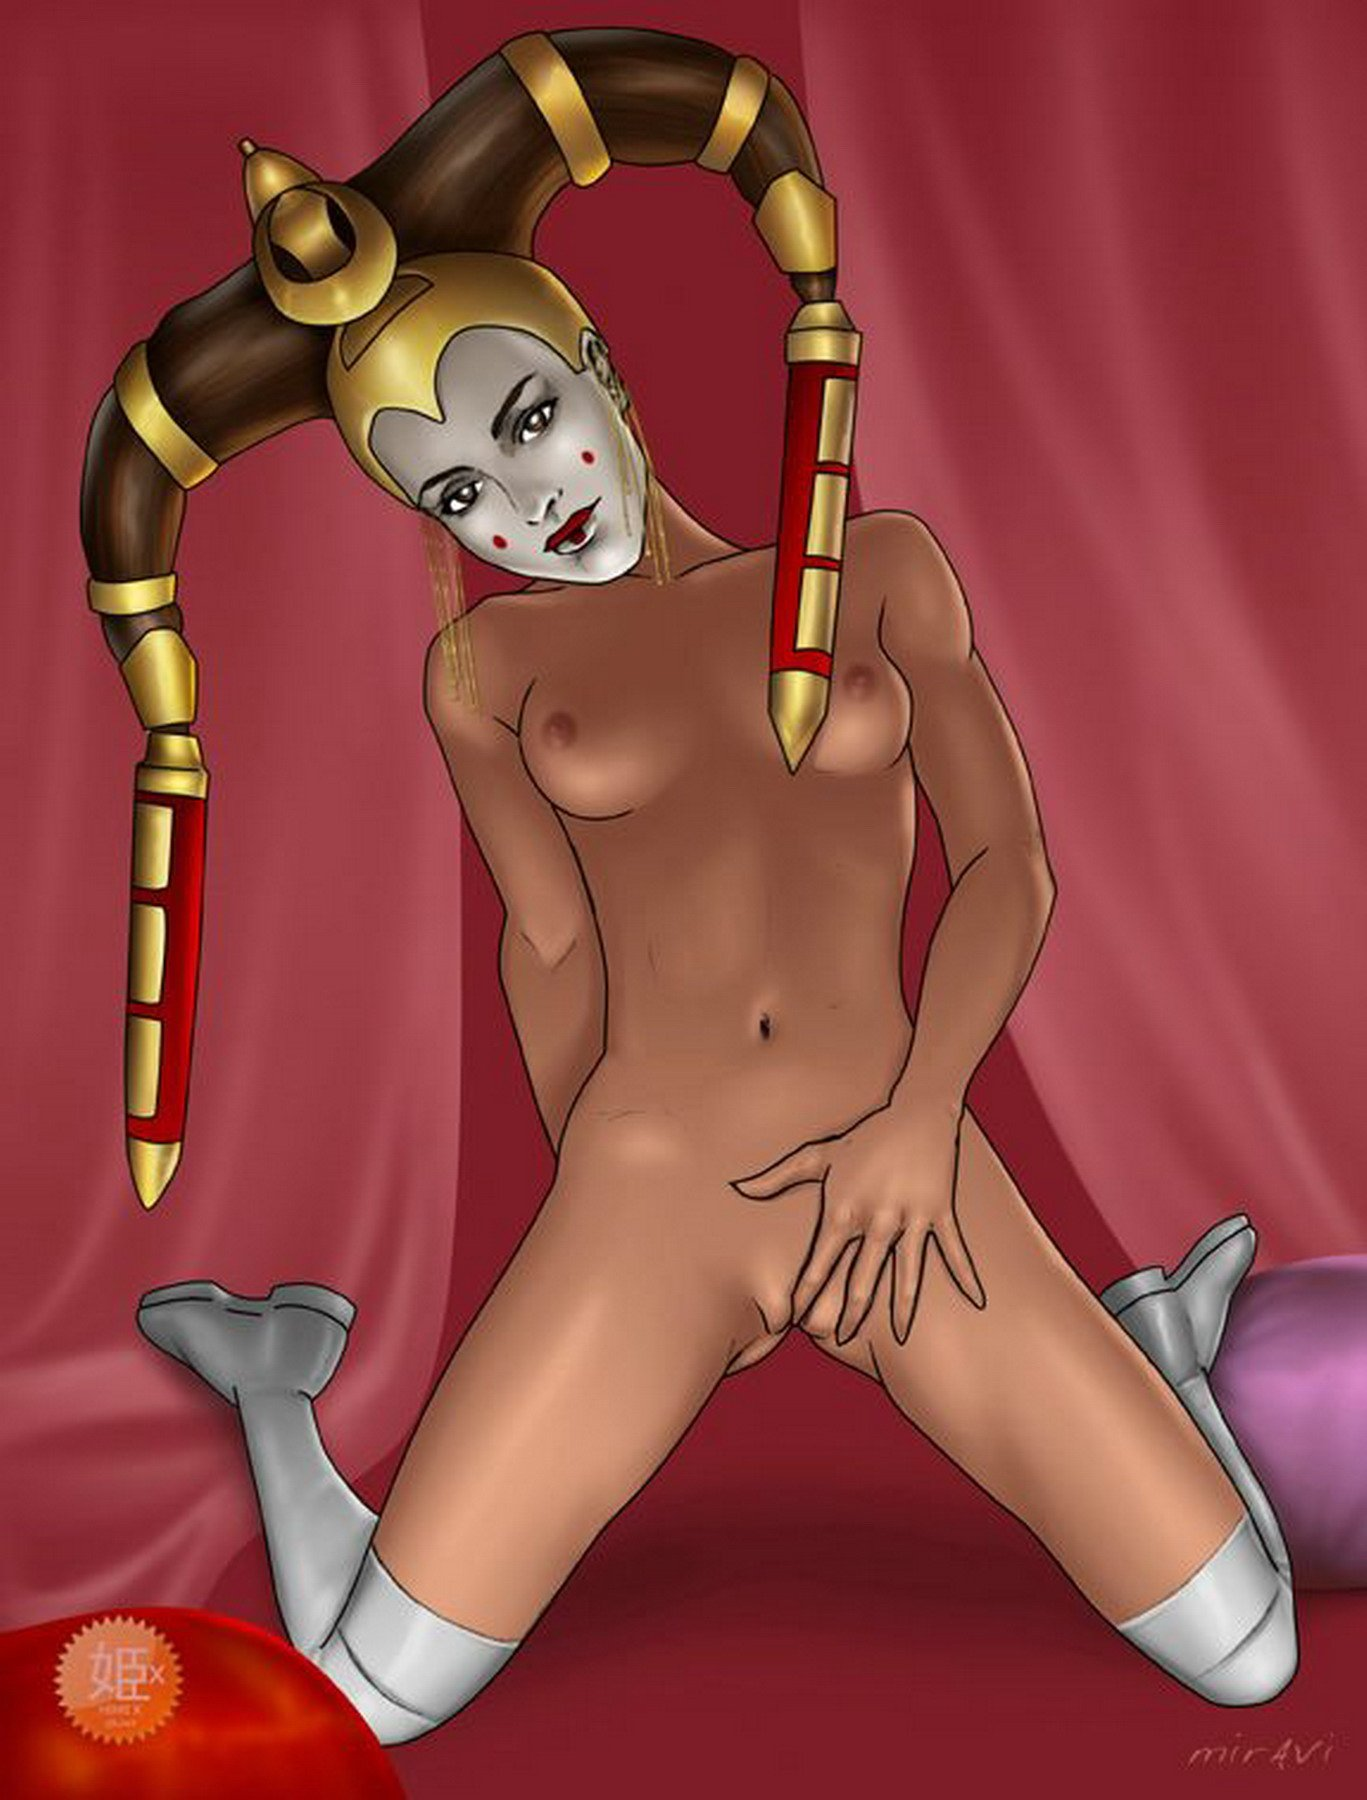 Star wars pu ssy pic nude tube